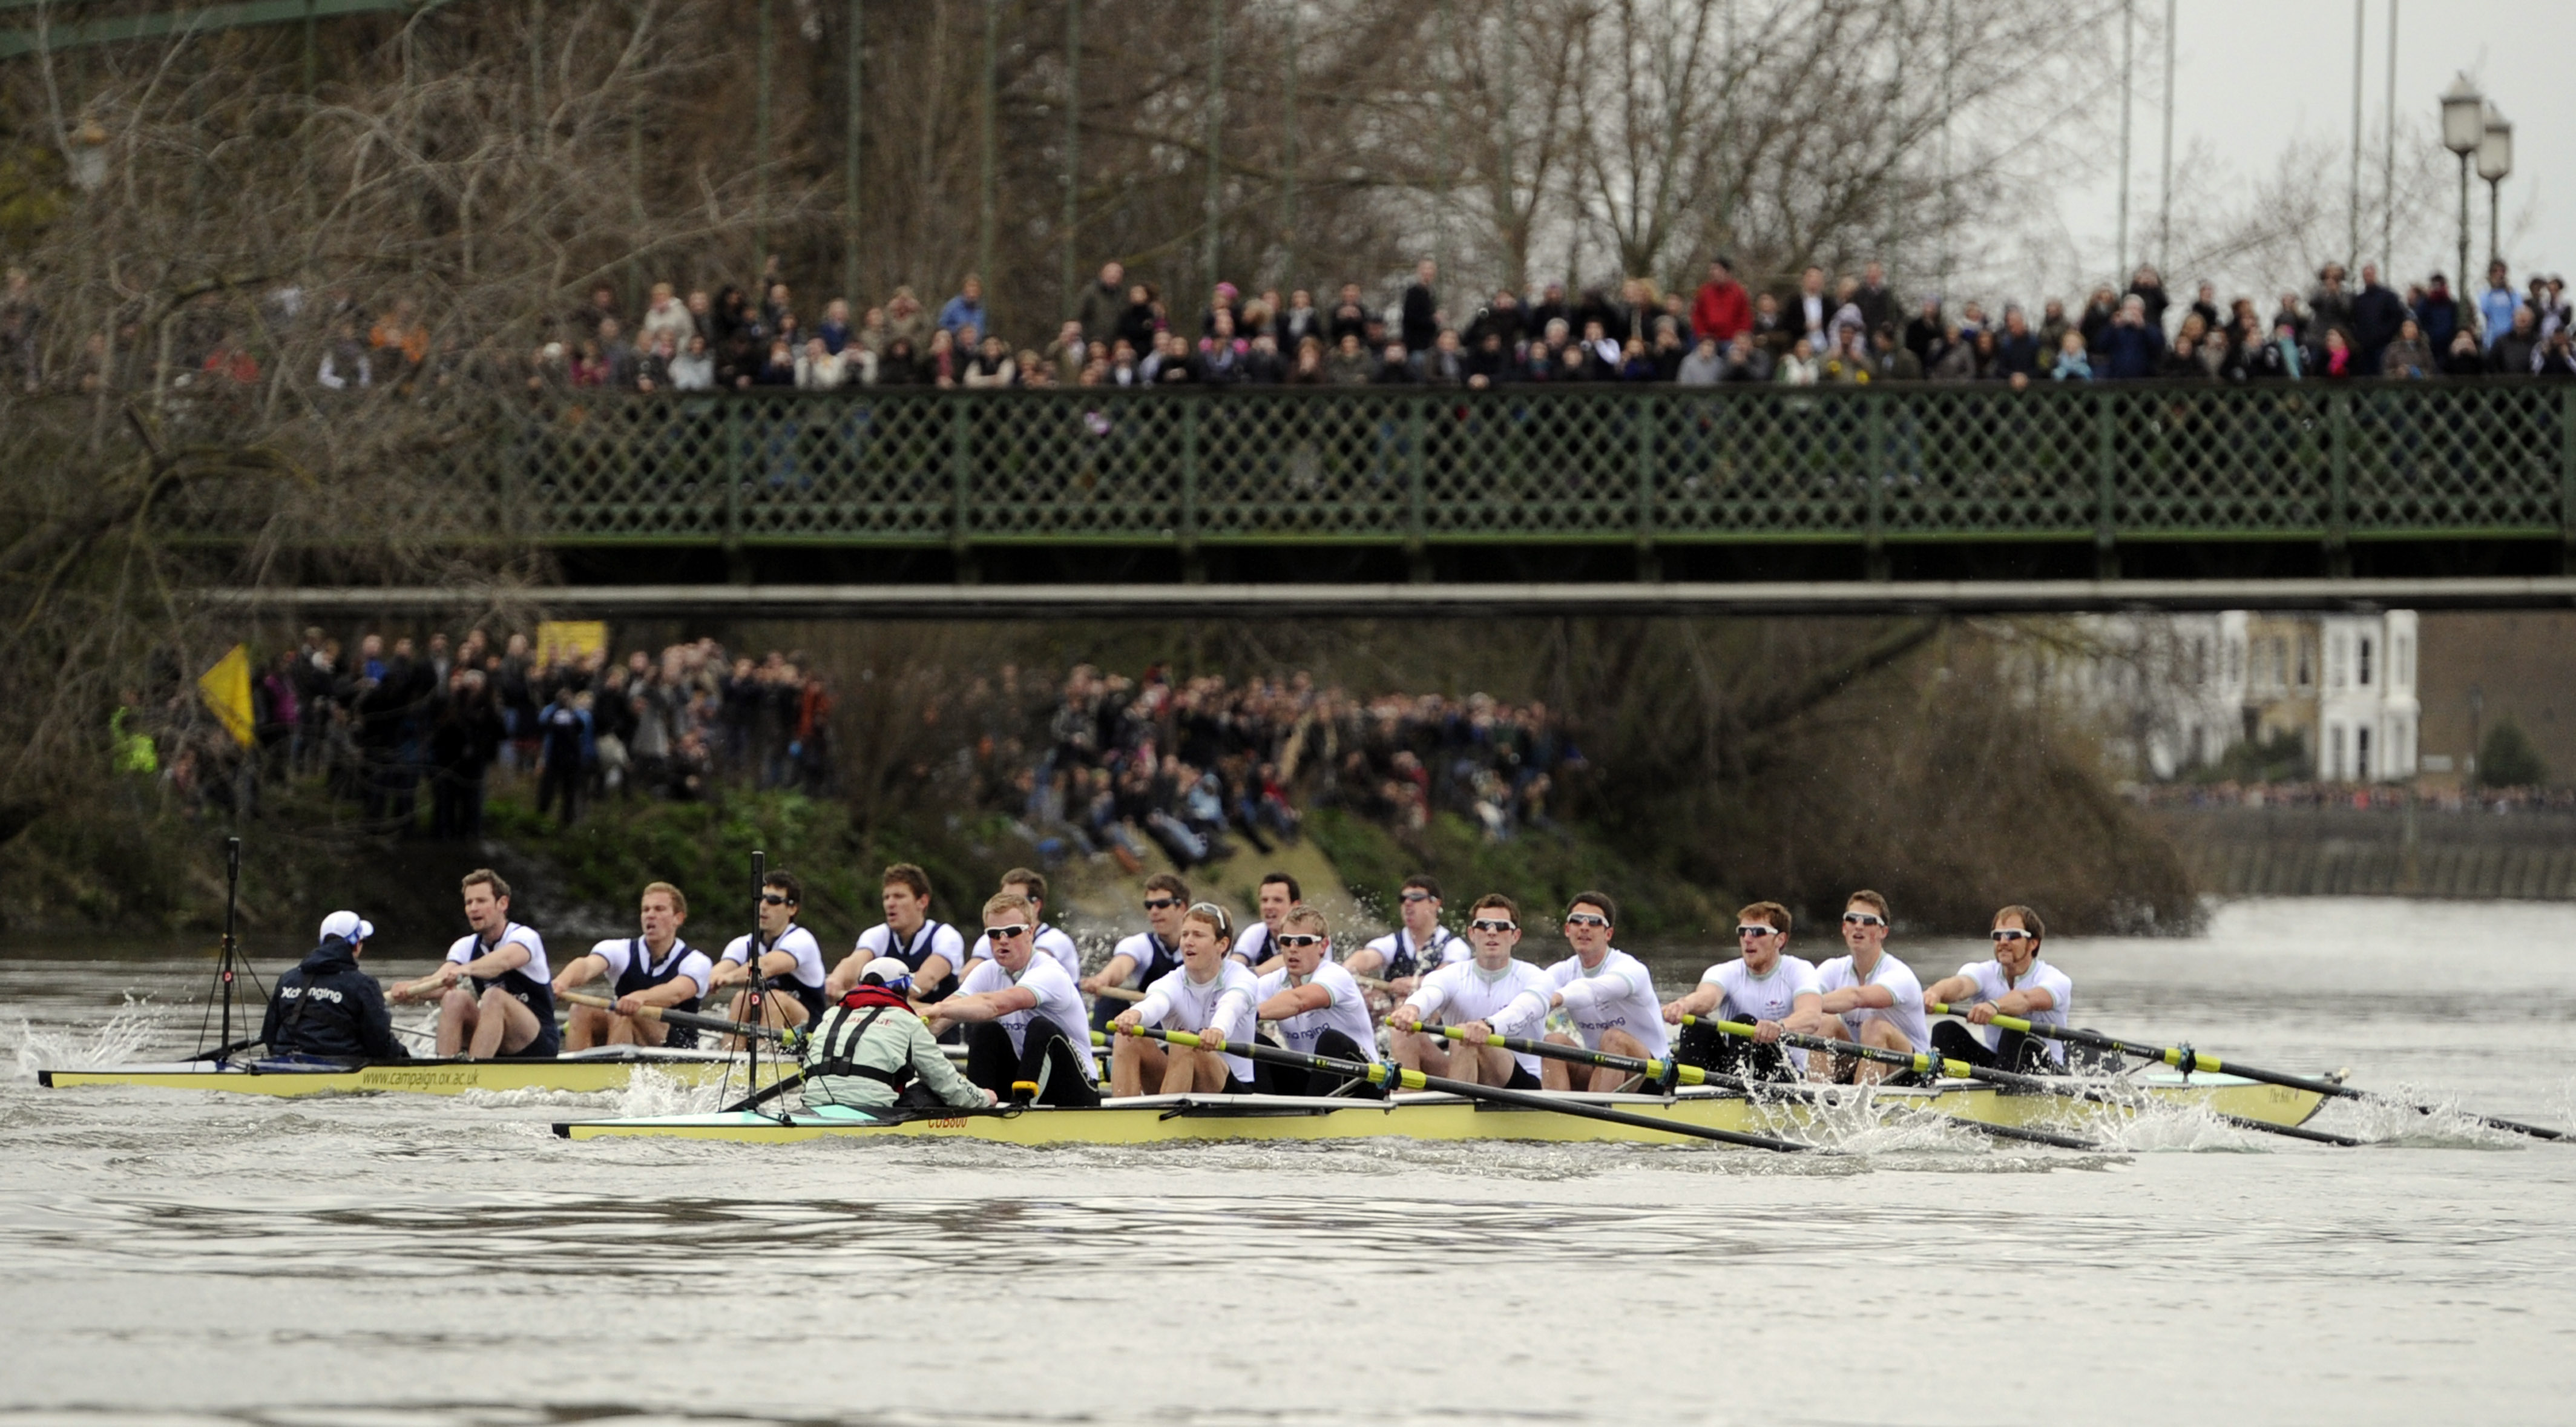 The Cambridge boat, right, approaches Hammersmith Bridge as they race against the Oxford boat, left, during the 156th running of the Boat Race, London...